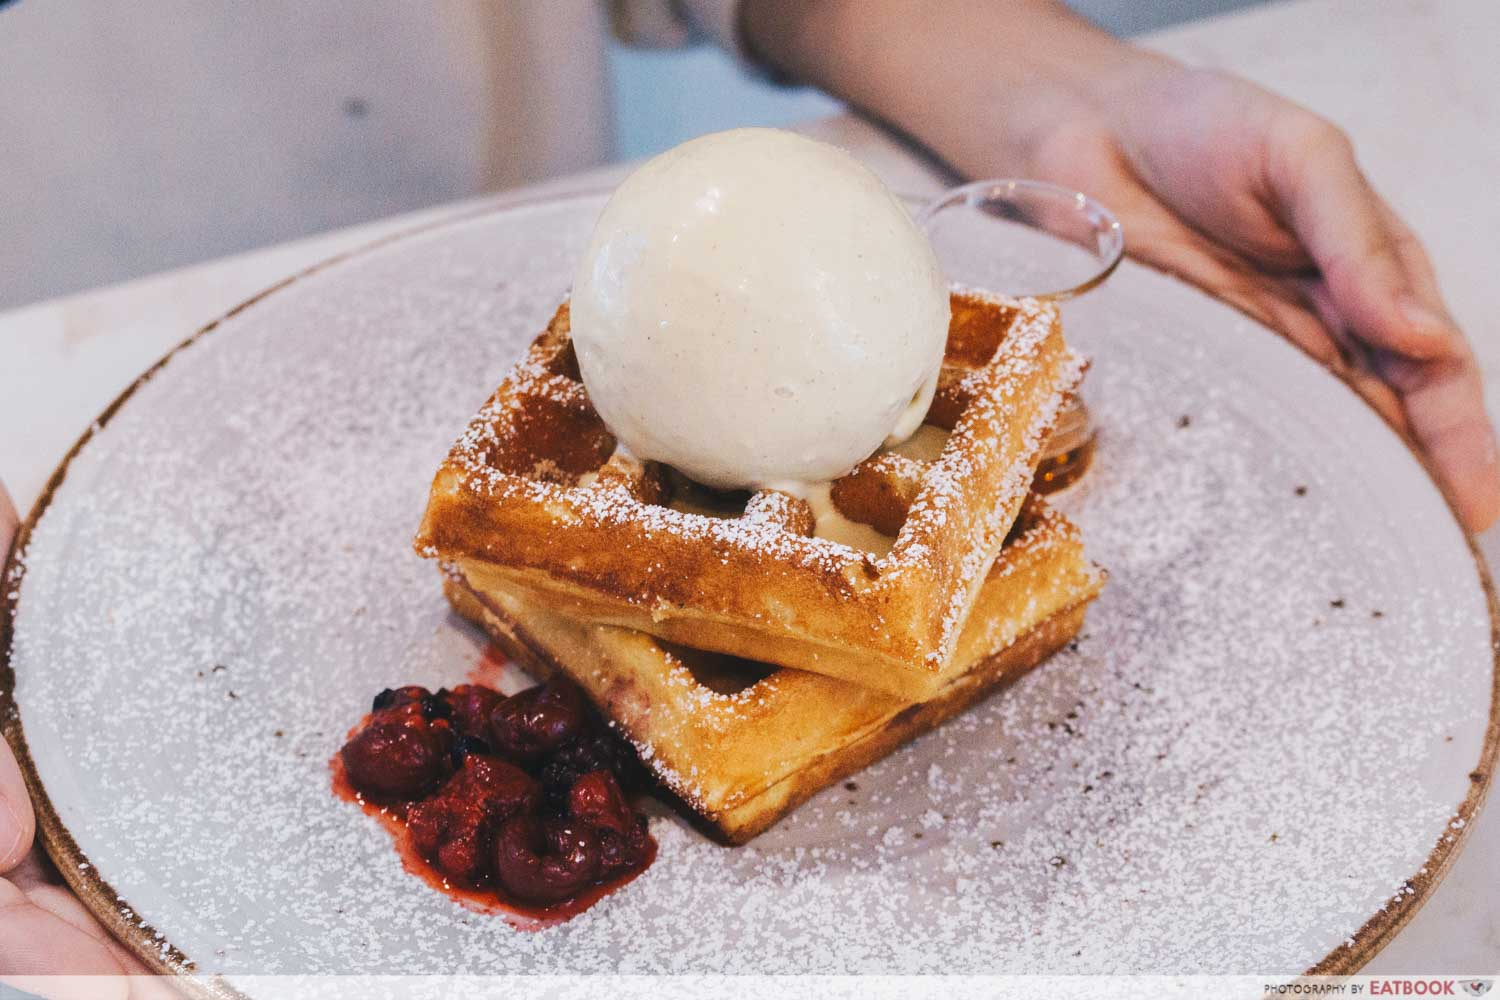 Signature Waffles with Roasted Pistachio and Maple Syrup